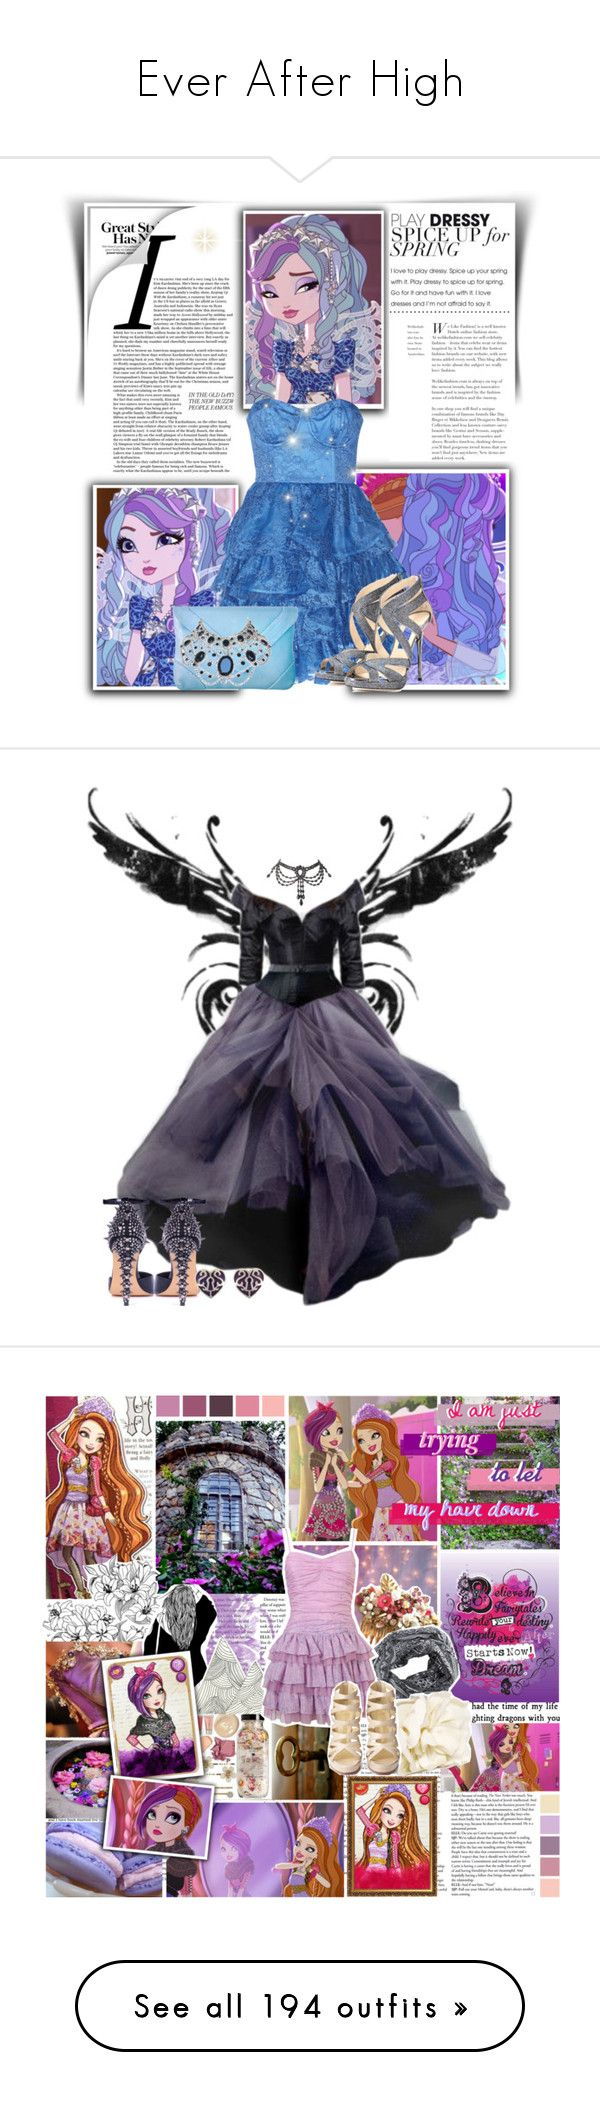 """Ever After High"" by caitikat441 ❤ liked on Polyvore featuring Sarah Jessica Parker, Columbia, Haute Hippie, Shabby Chic, Pieces, Rare London, Christian Louboutin, Hasbro, René Caovilla and ASOS"